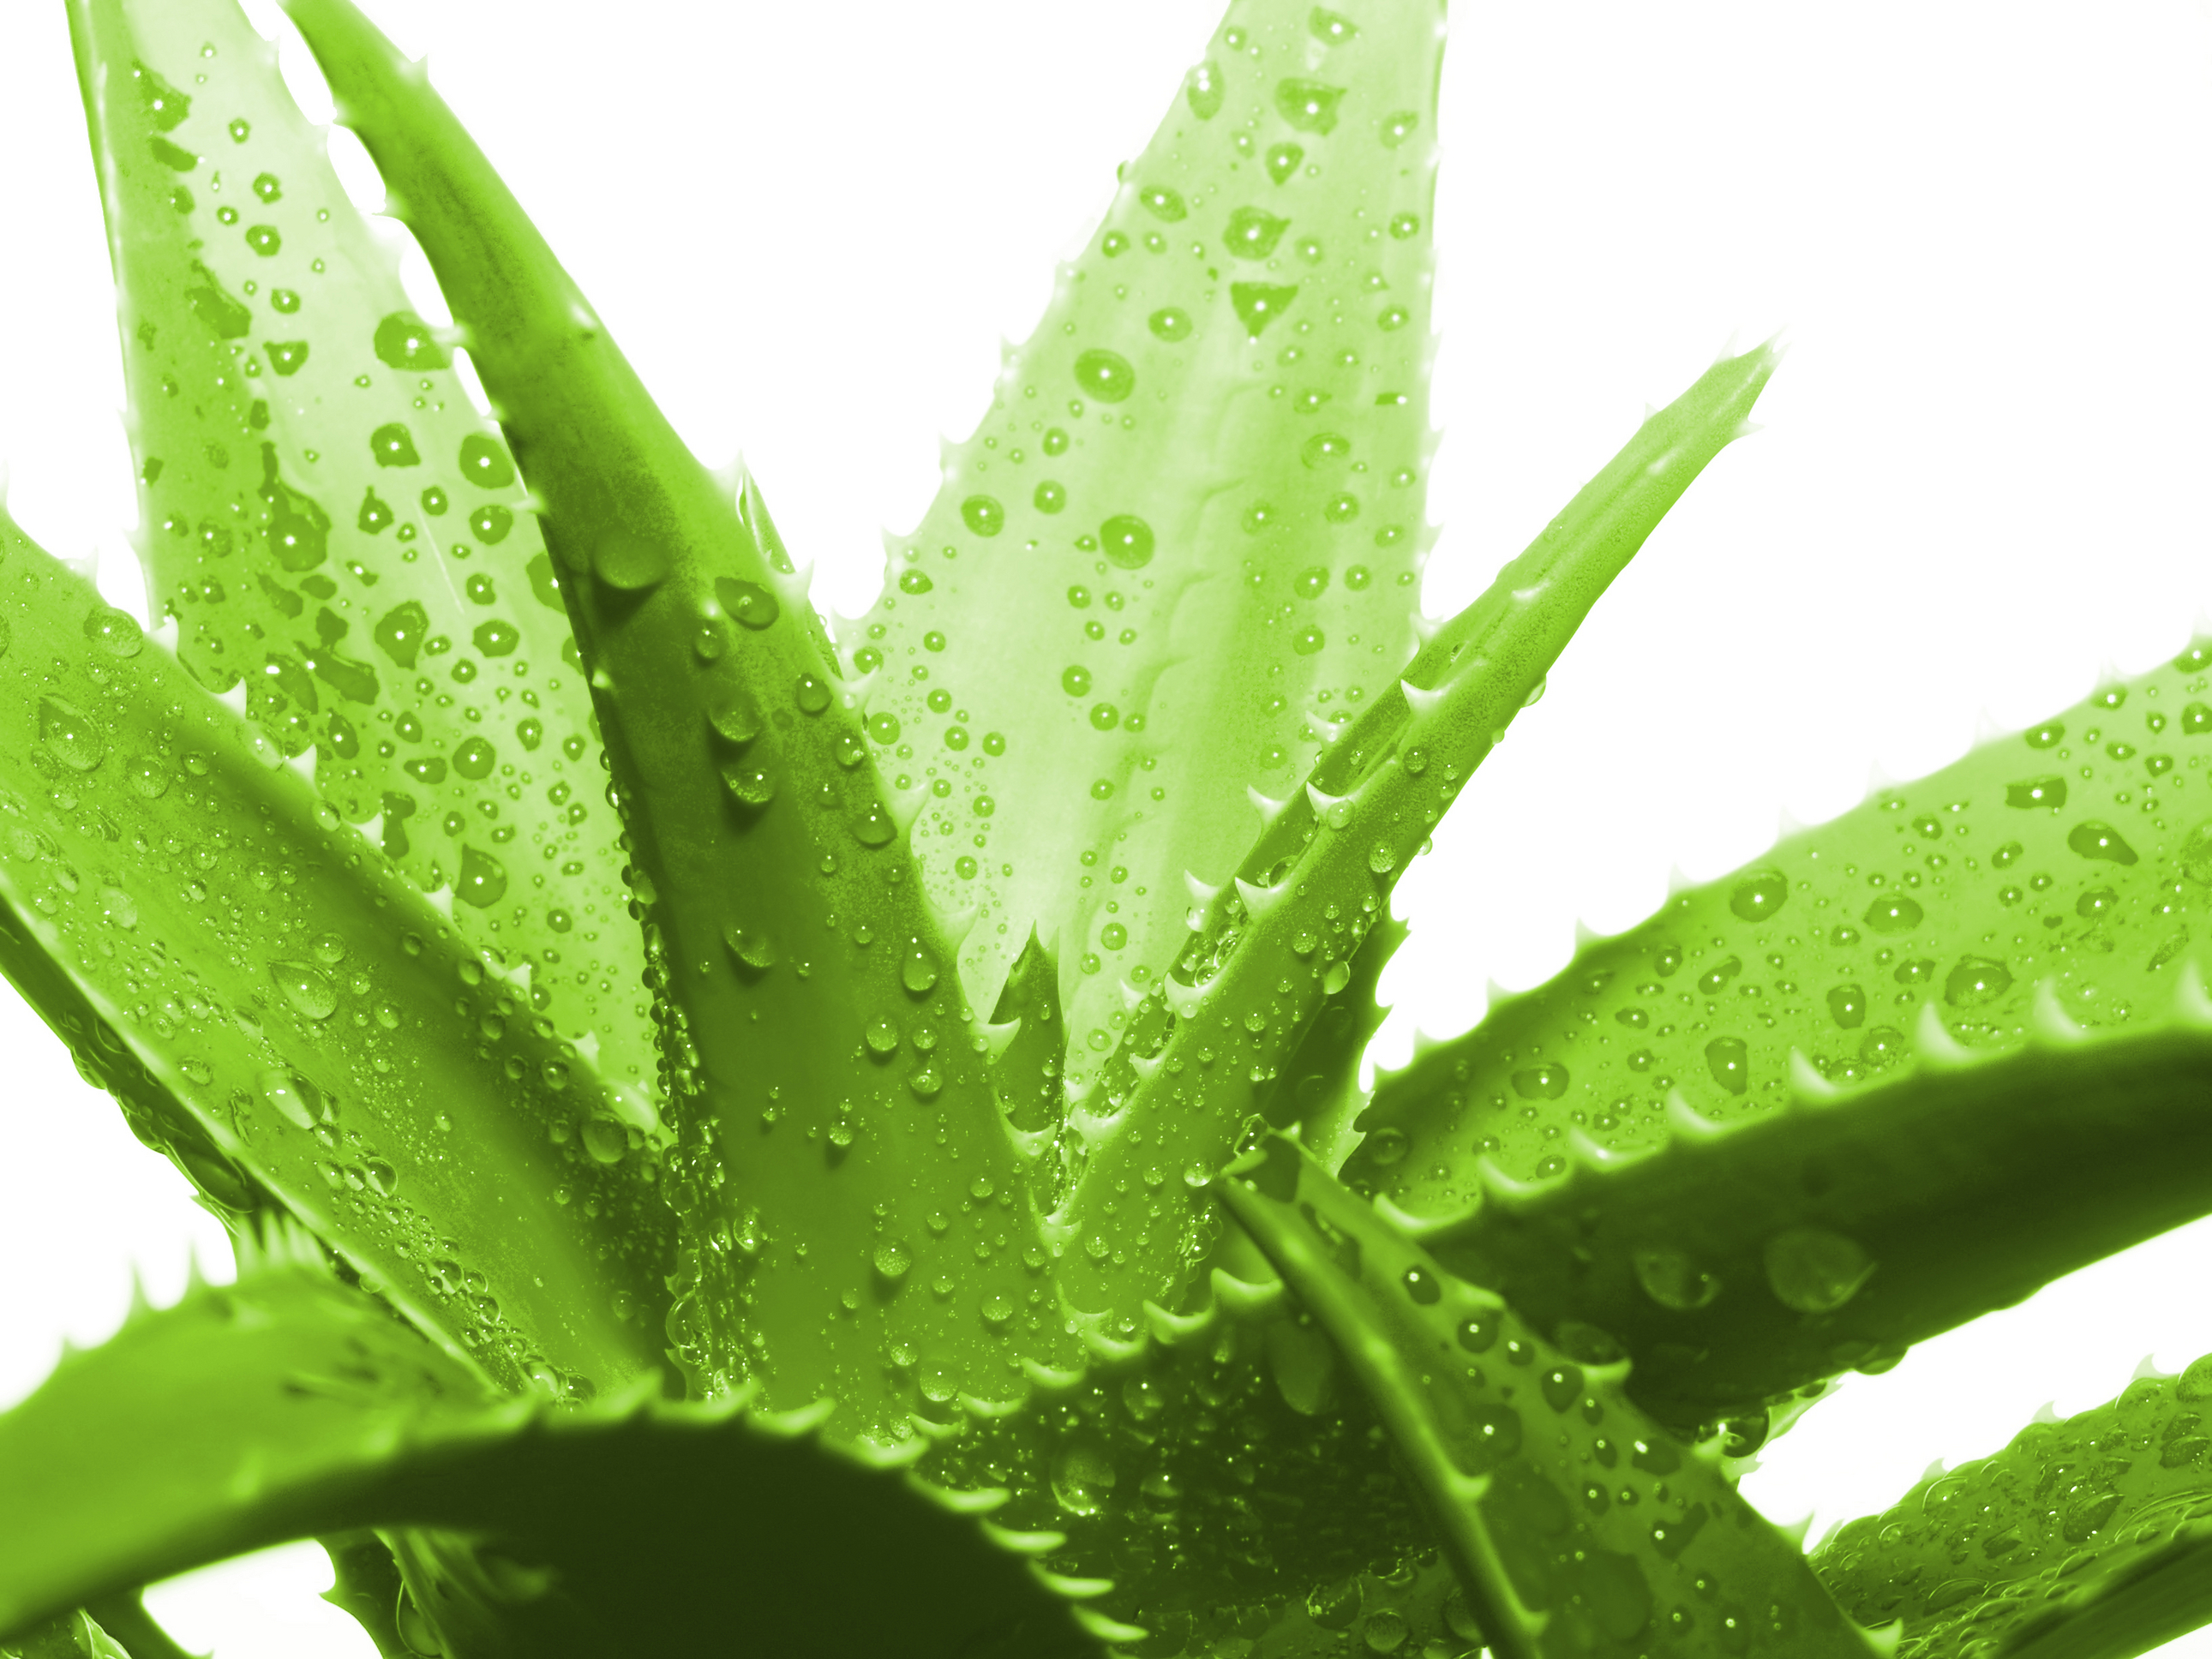 Aleo Vera Aloe Vera And Its Benefits Ayurveda